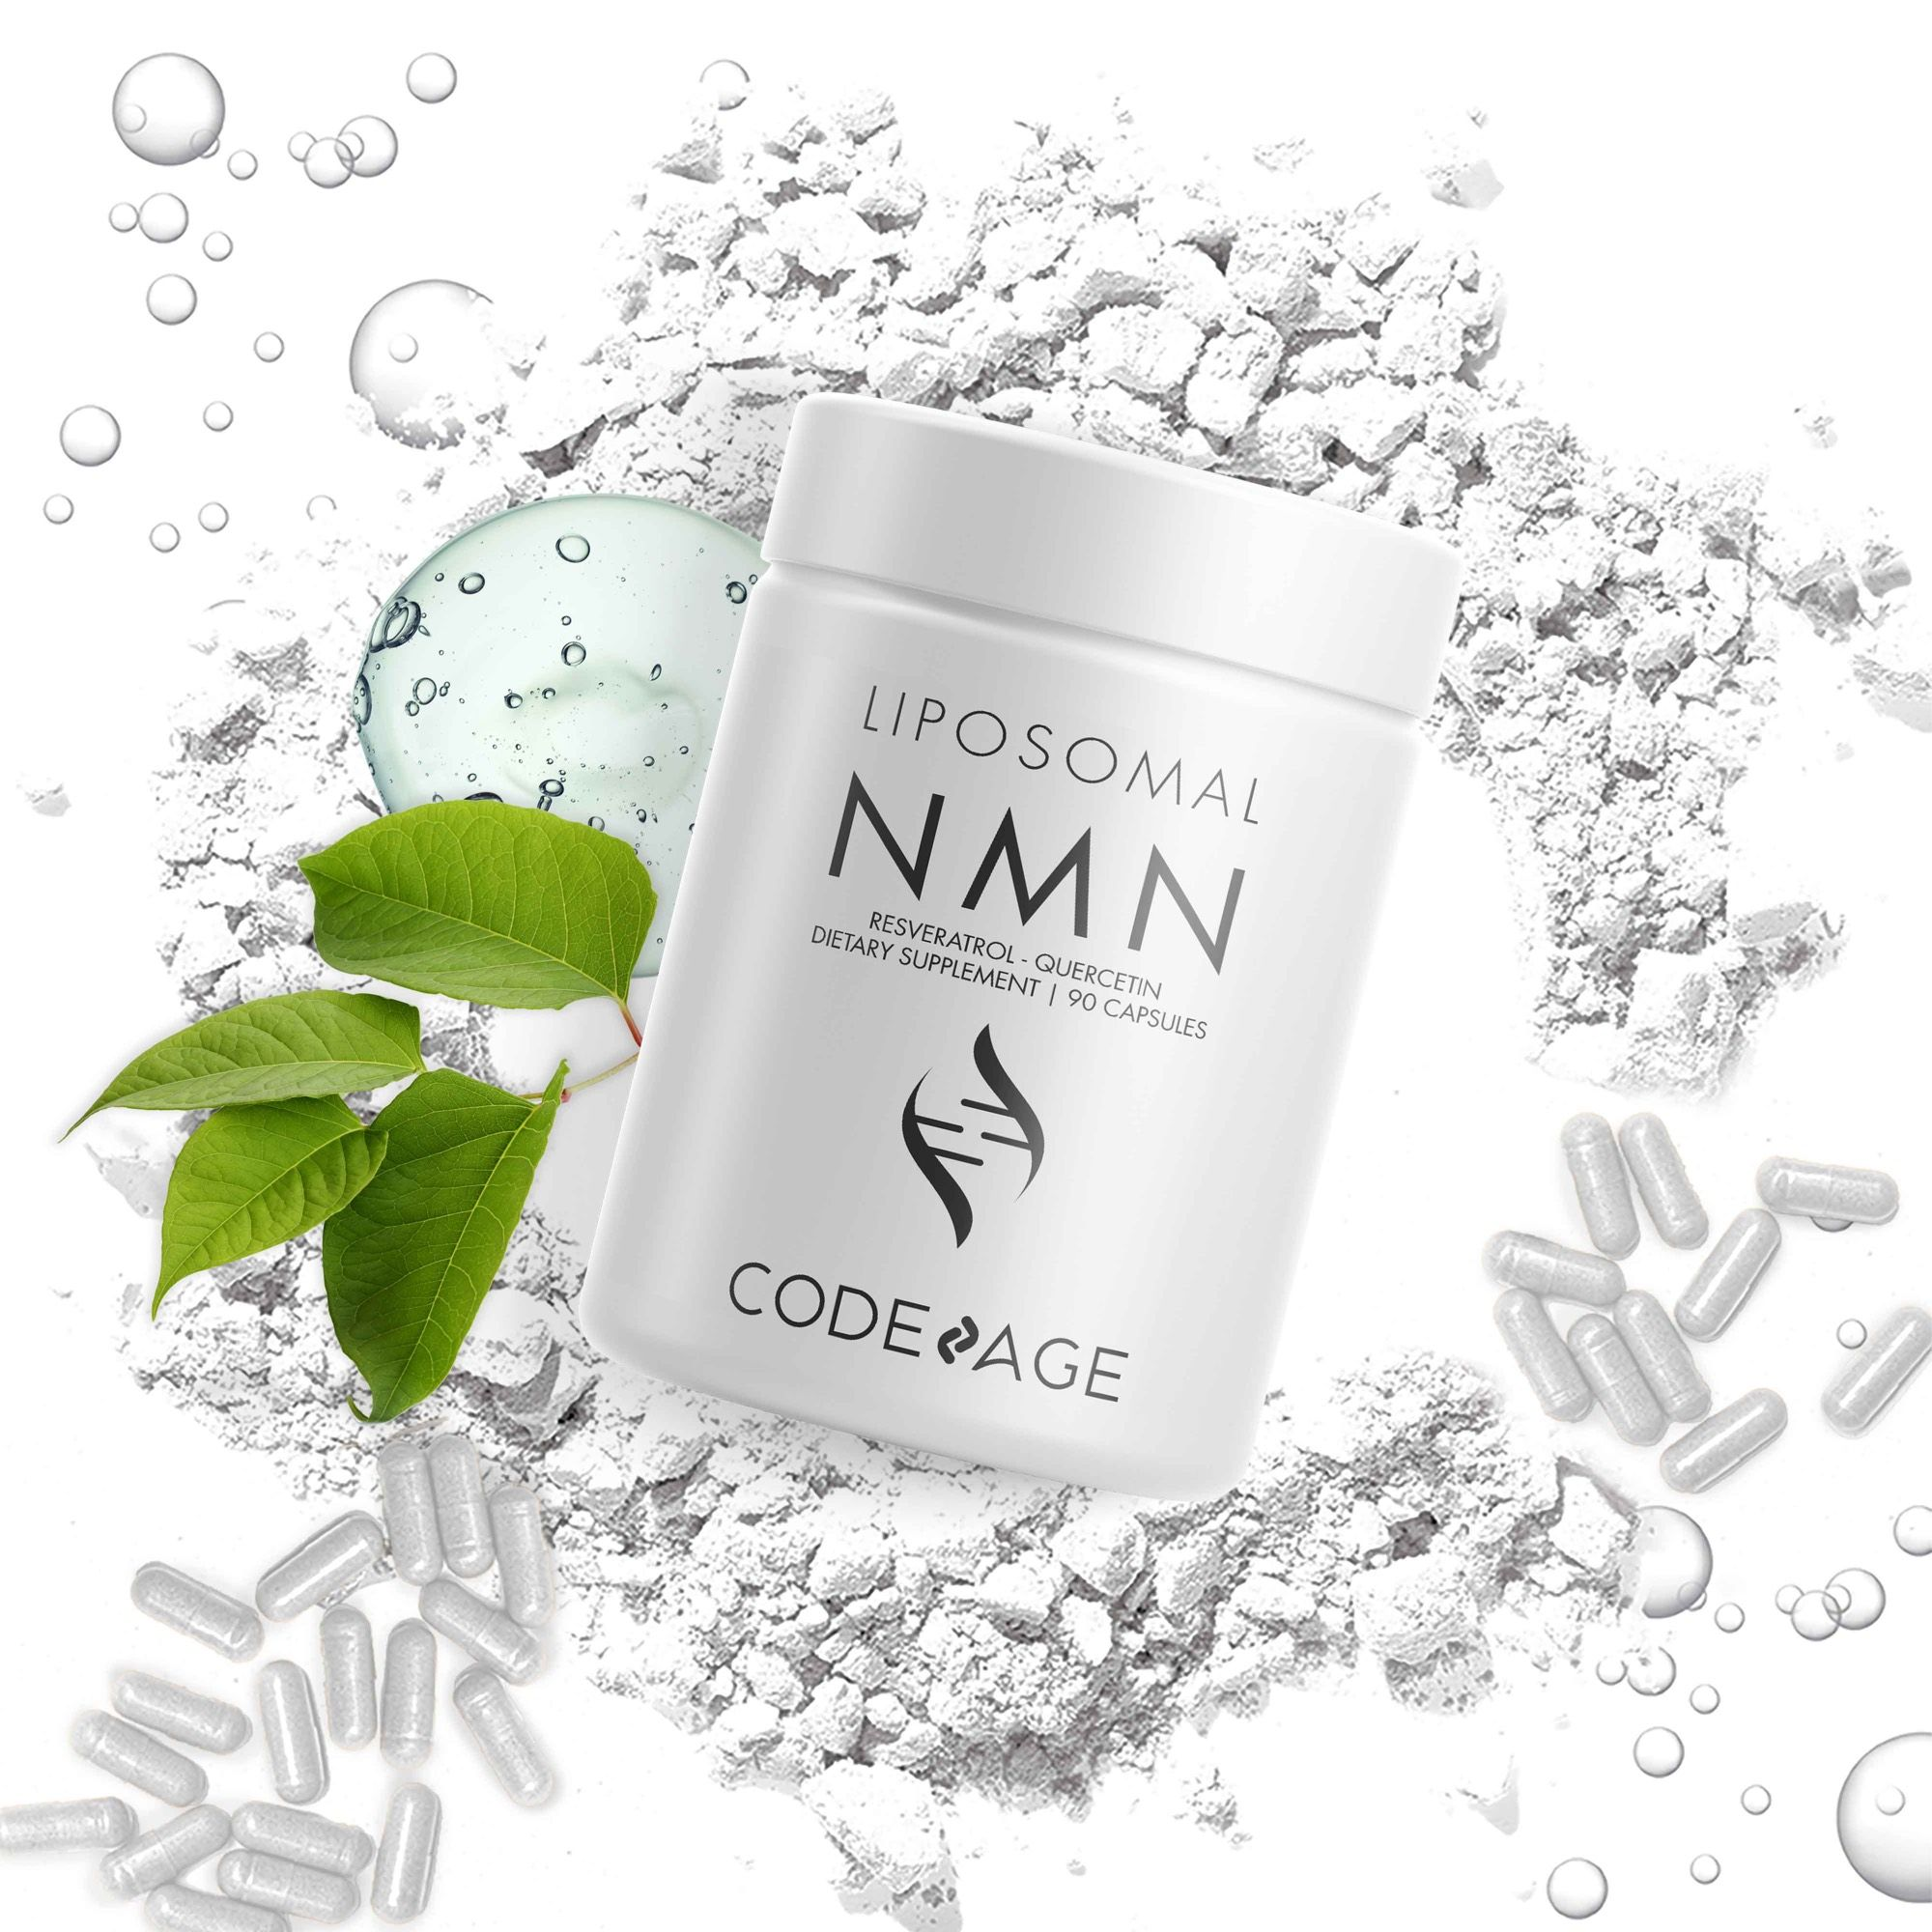 Codeage Liposomal NMN with Resveratrol supplement and Quercetin capsules